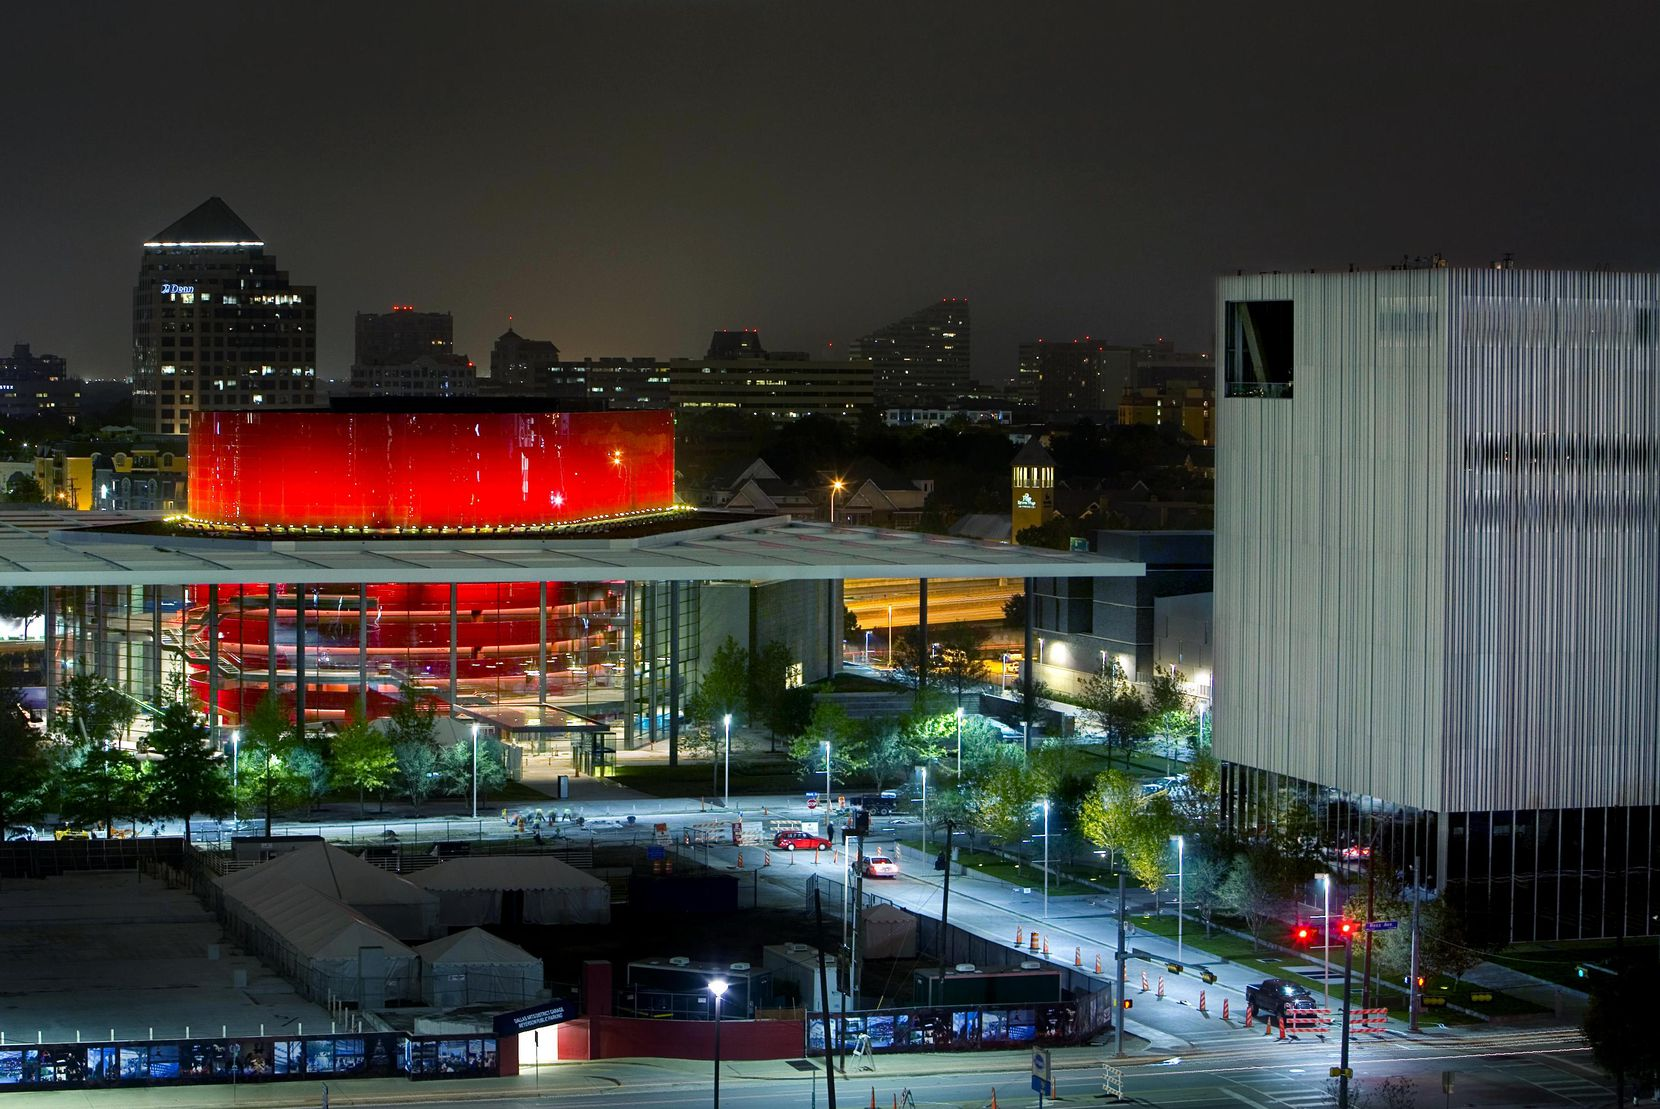 Foster + Partners designed the Margot and Bill Winspear Opera House with its red drum-shaped performance hall in downtown Dallas. (Tom Fox/Staff Photographer)